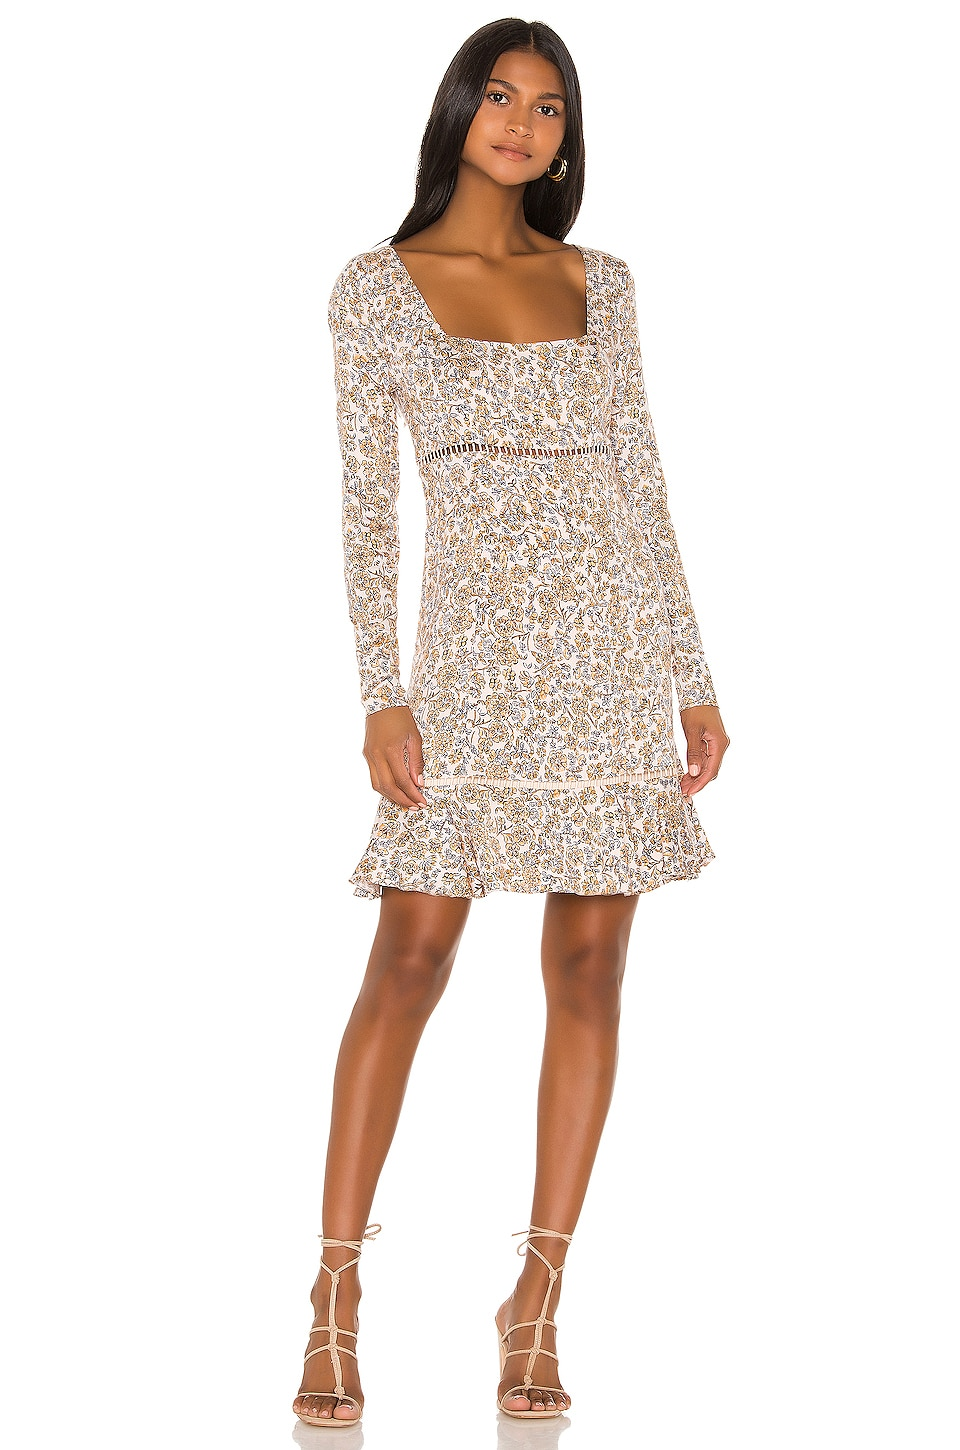 Free People Boheme Mini Dress in Ivory